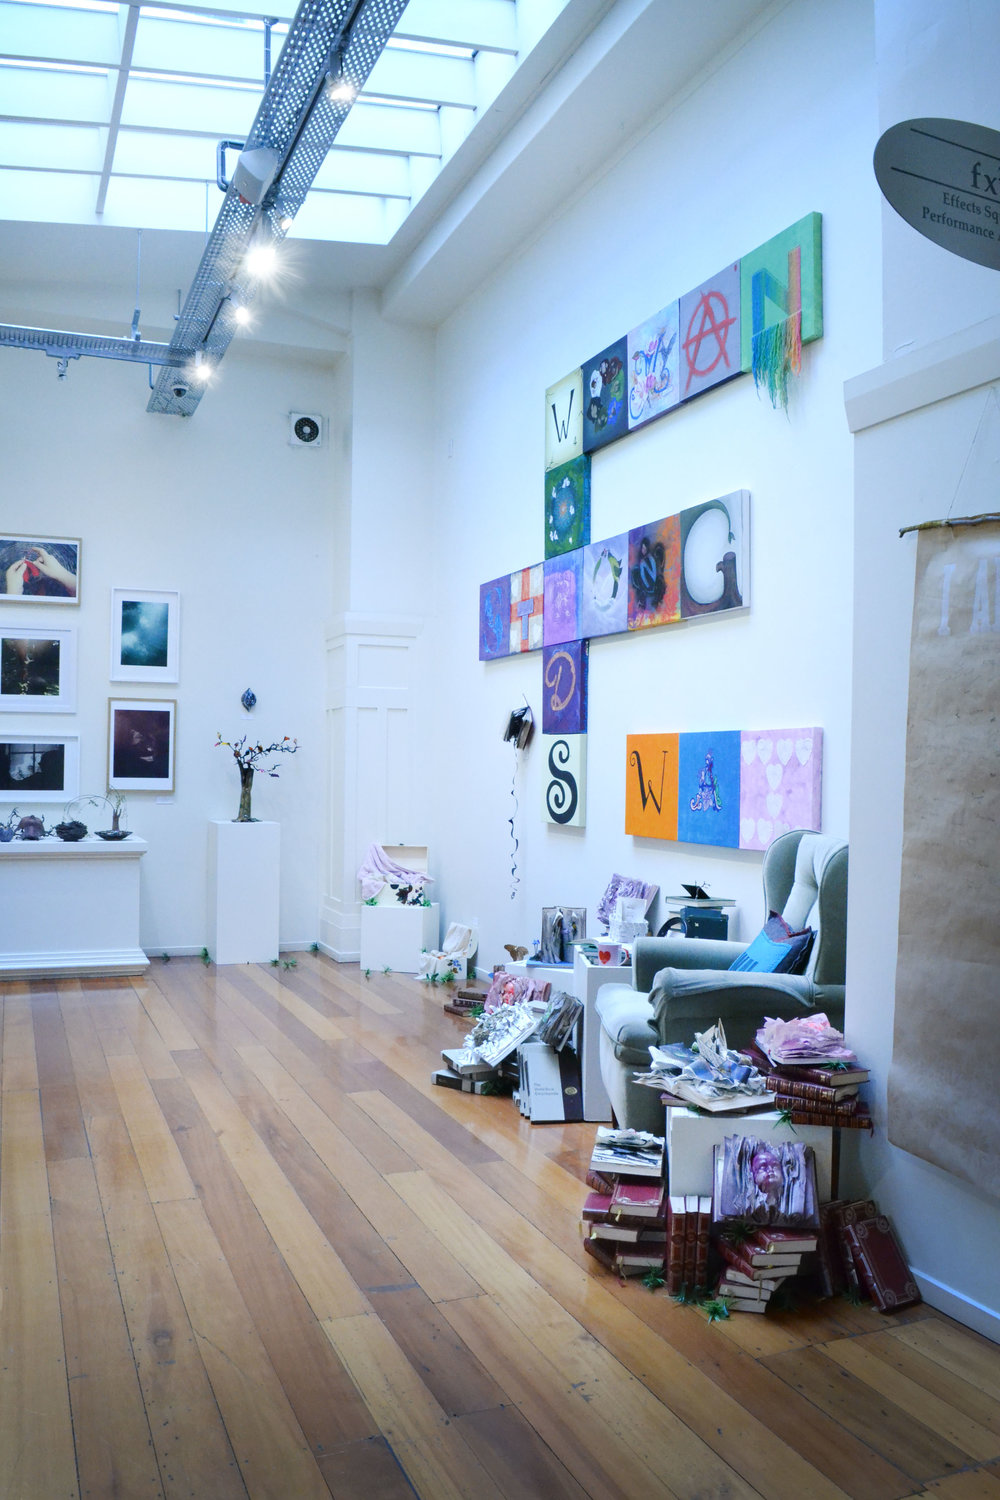 The ground floor exhibition space